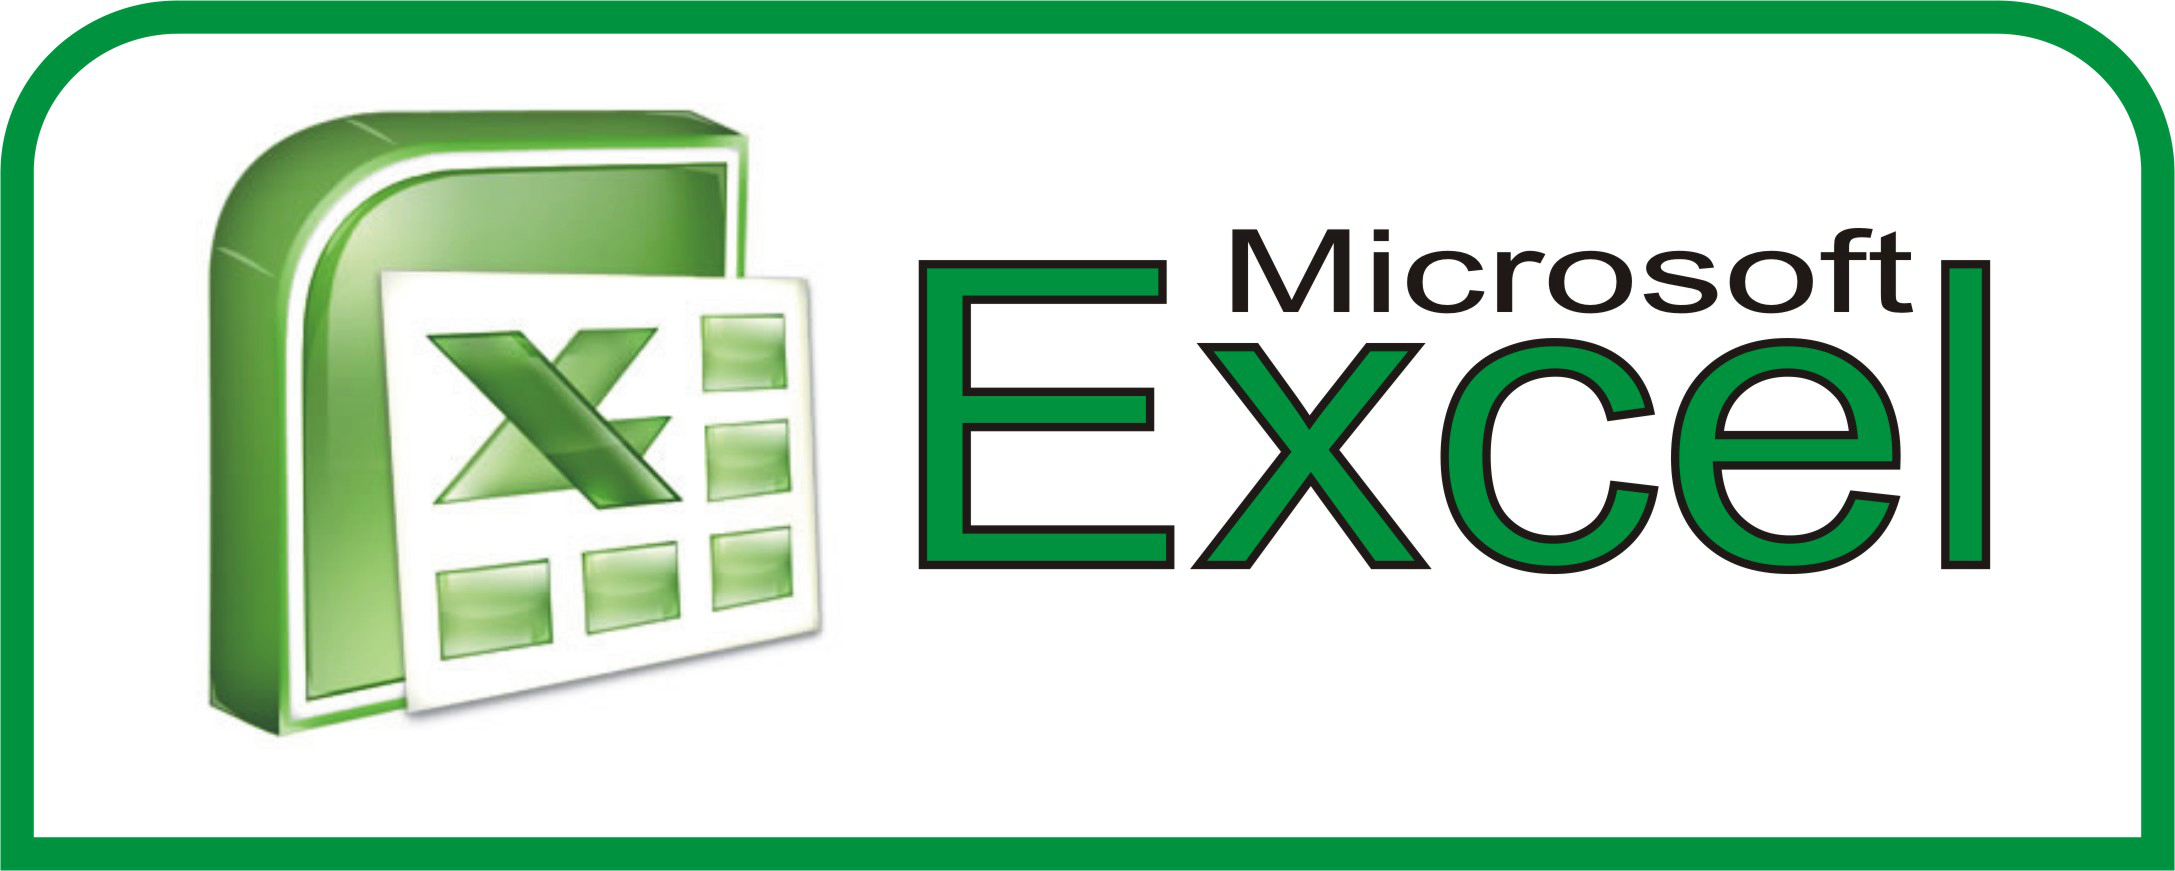 Ediblewildsus  Unique  Excel Shortcuts You Probably Didnt Know About  Techdissected With Marvelous Best Excel Training Course Online Besides Excel Formulas Contains Furthermore Fisher Test Excel With Appealing Simulations In Excel Also Timeline Graph Excel In Addition Excel Macro Hide Rows And Make A Box And Whisker Plot In Excel As Well As Excel Customer Service Number Additionally Count Unique Items In Excel From Techdissectedcom With Ediblewildsus  Marvelous  Excel Shortcuts You Probably Didnt Know About  Techdissected With Appealing Best Excel Training Course Online Besides Excel Formulas Contains Furthermore Fisher Test Excel And Unique Simulations In Excel Also Timeline Graph Excel In Addition Excel Macro Hide Rows From Techdissectedcom